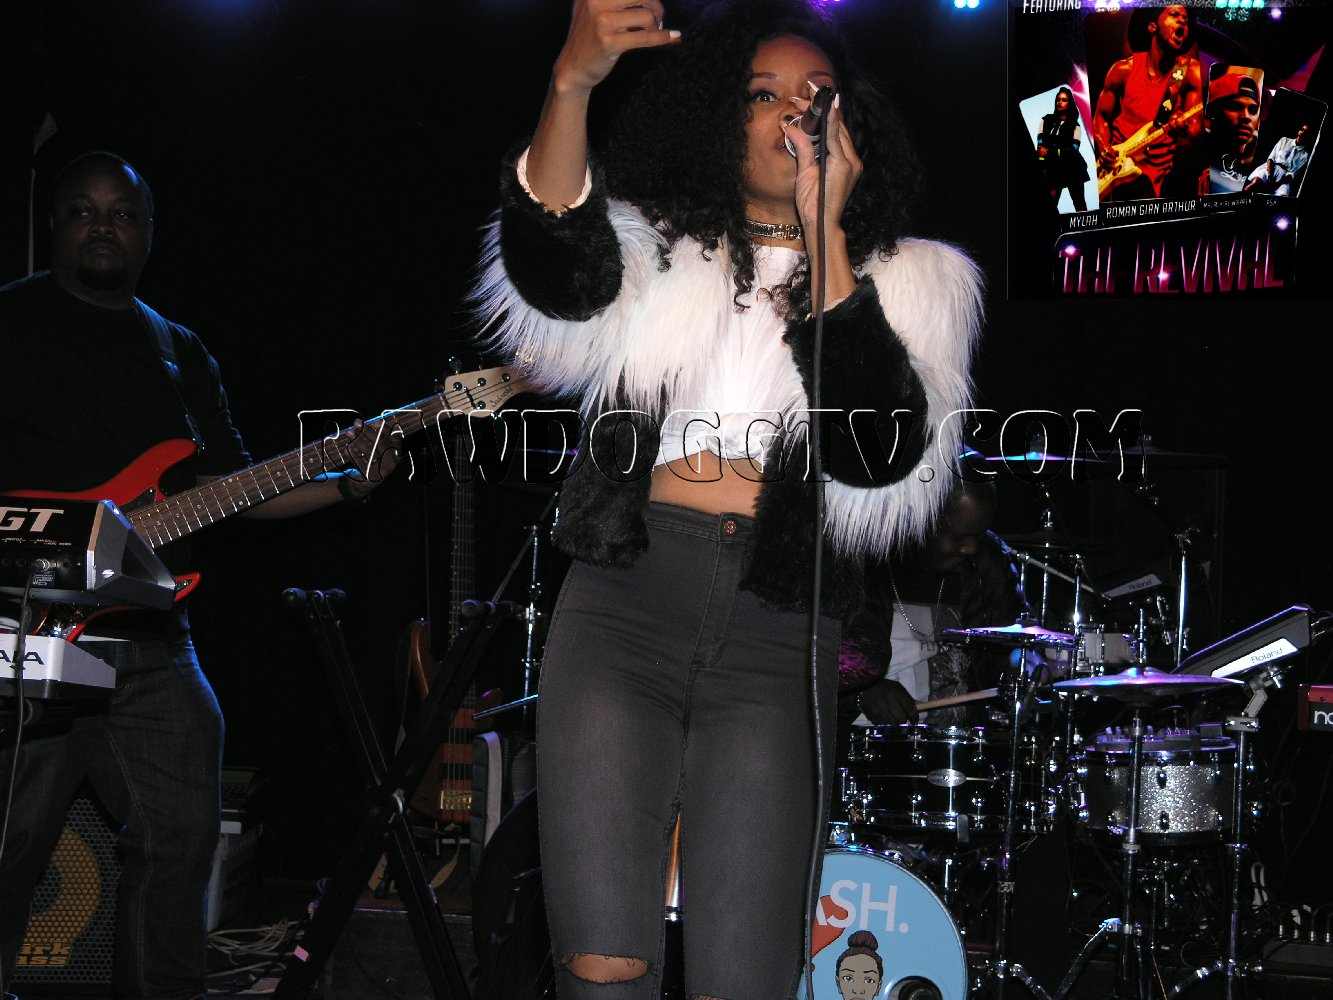 THE REVIVAL R&B SHOWCASE PHOTOS 2015 brian michael cox Atlanta Roman Gianarthur, Mylah, Malachiae, b cox, Real Music Tour-RAWDOGGTV 305-490-2182 Viral Marketing (23)